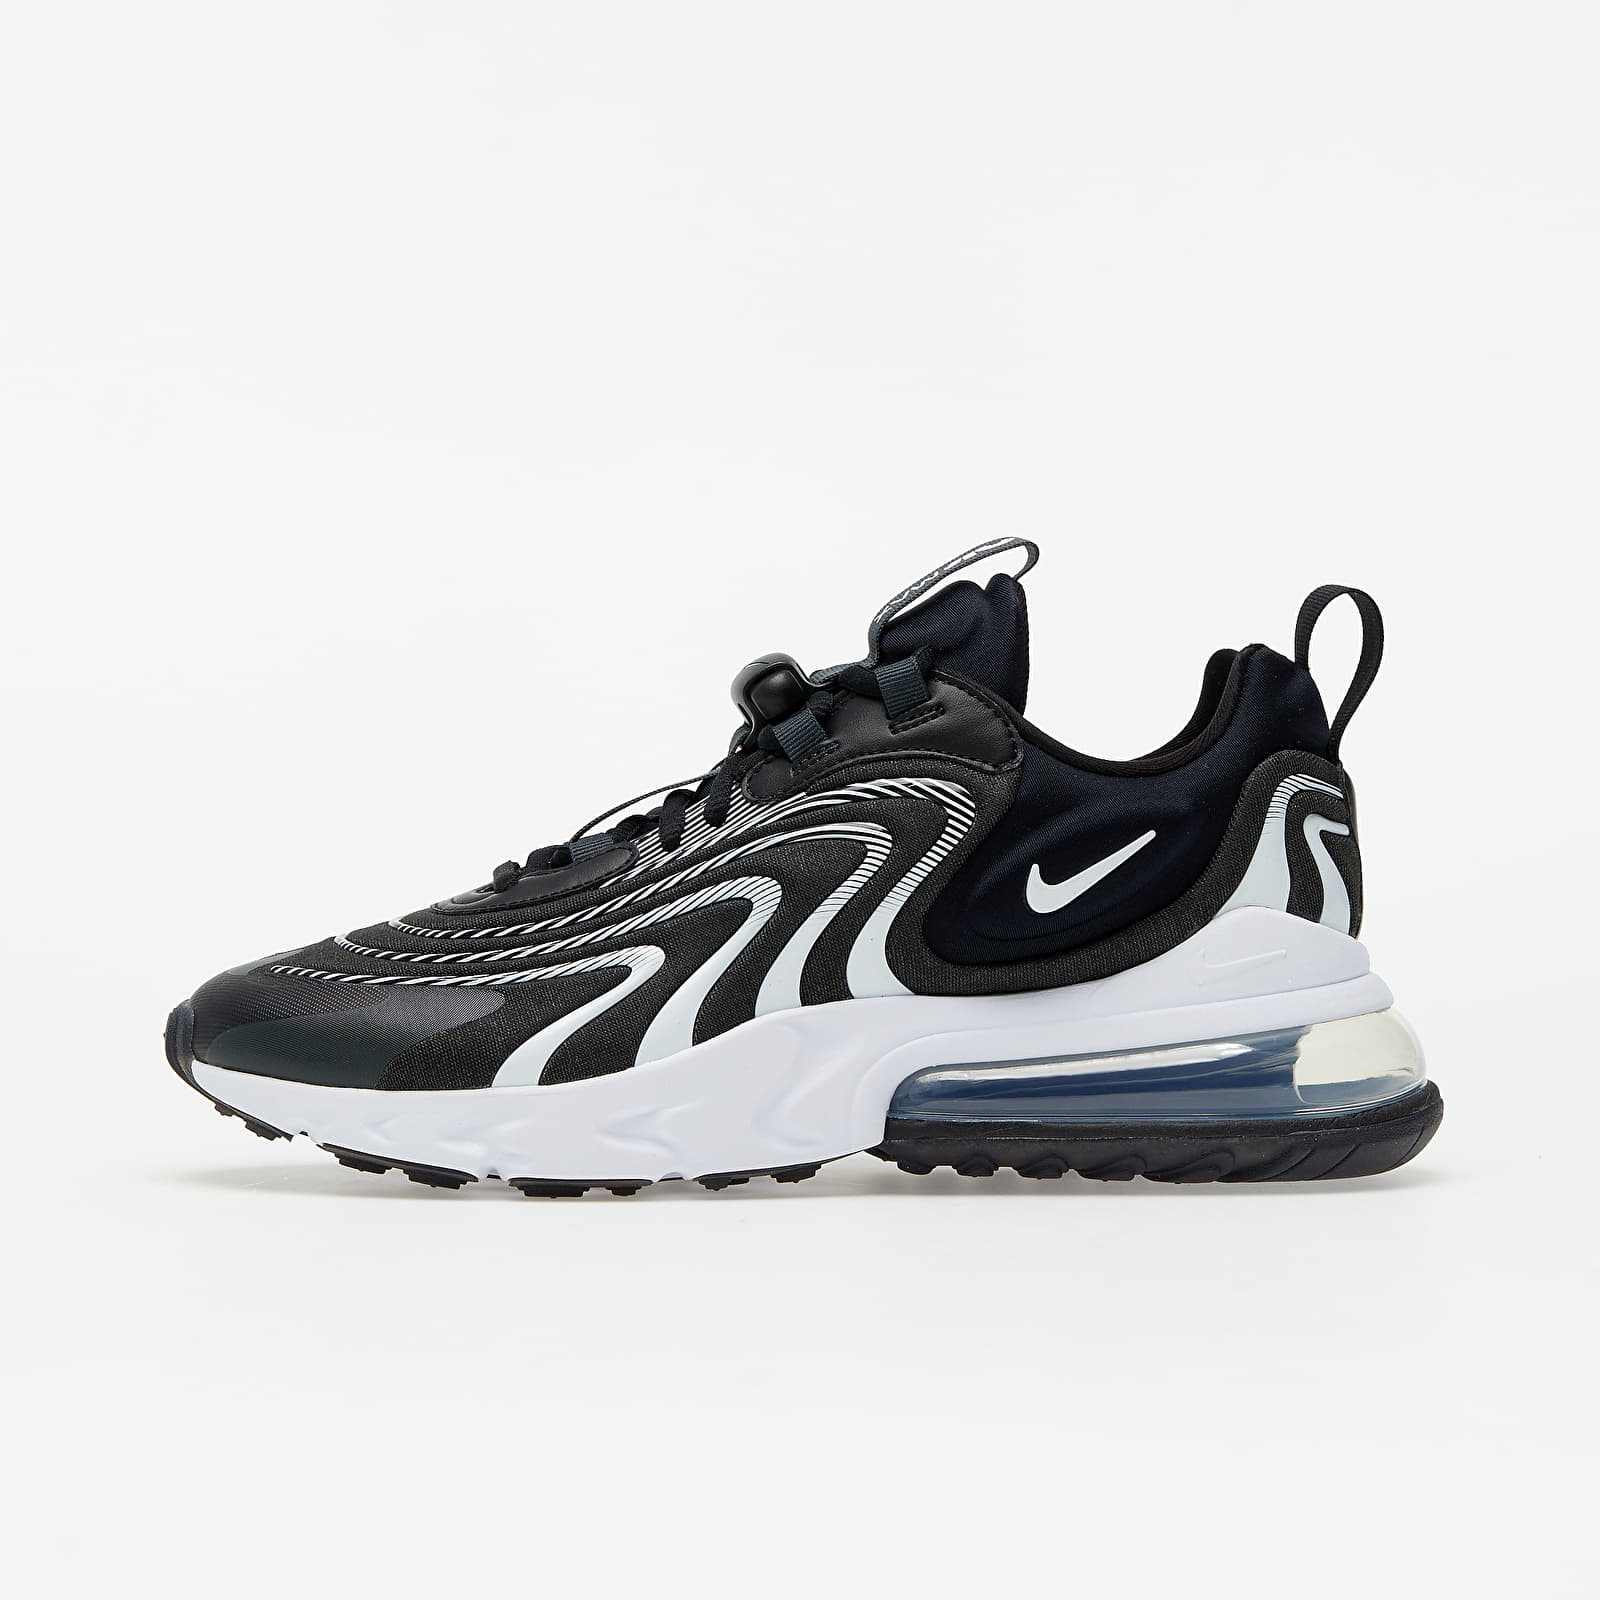 Nike Air Max 270 React ENG Black/ White-Dk Smoke Grey-Wolf Grey EUR 45.5